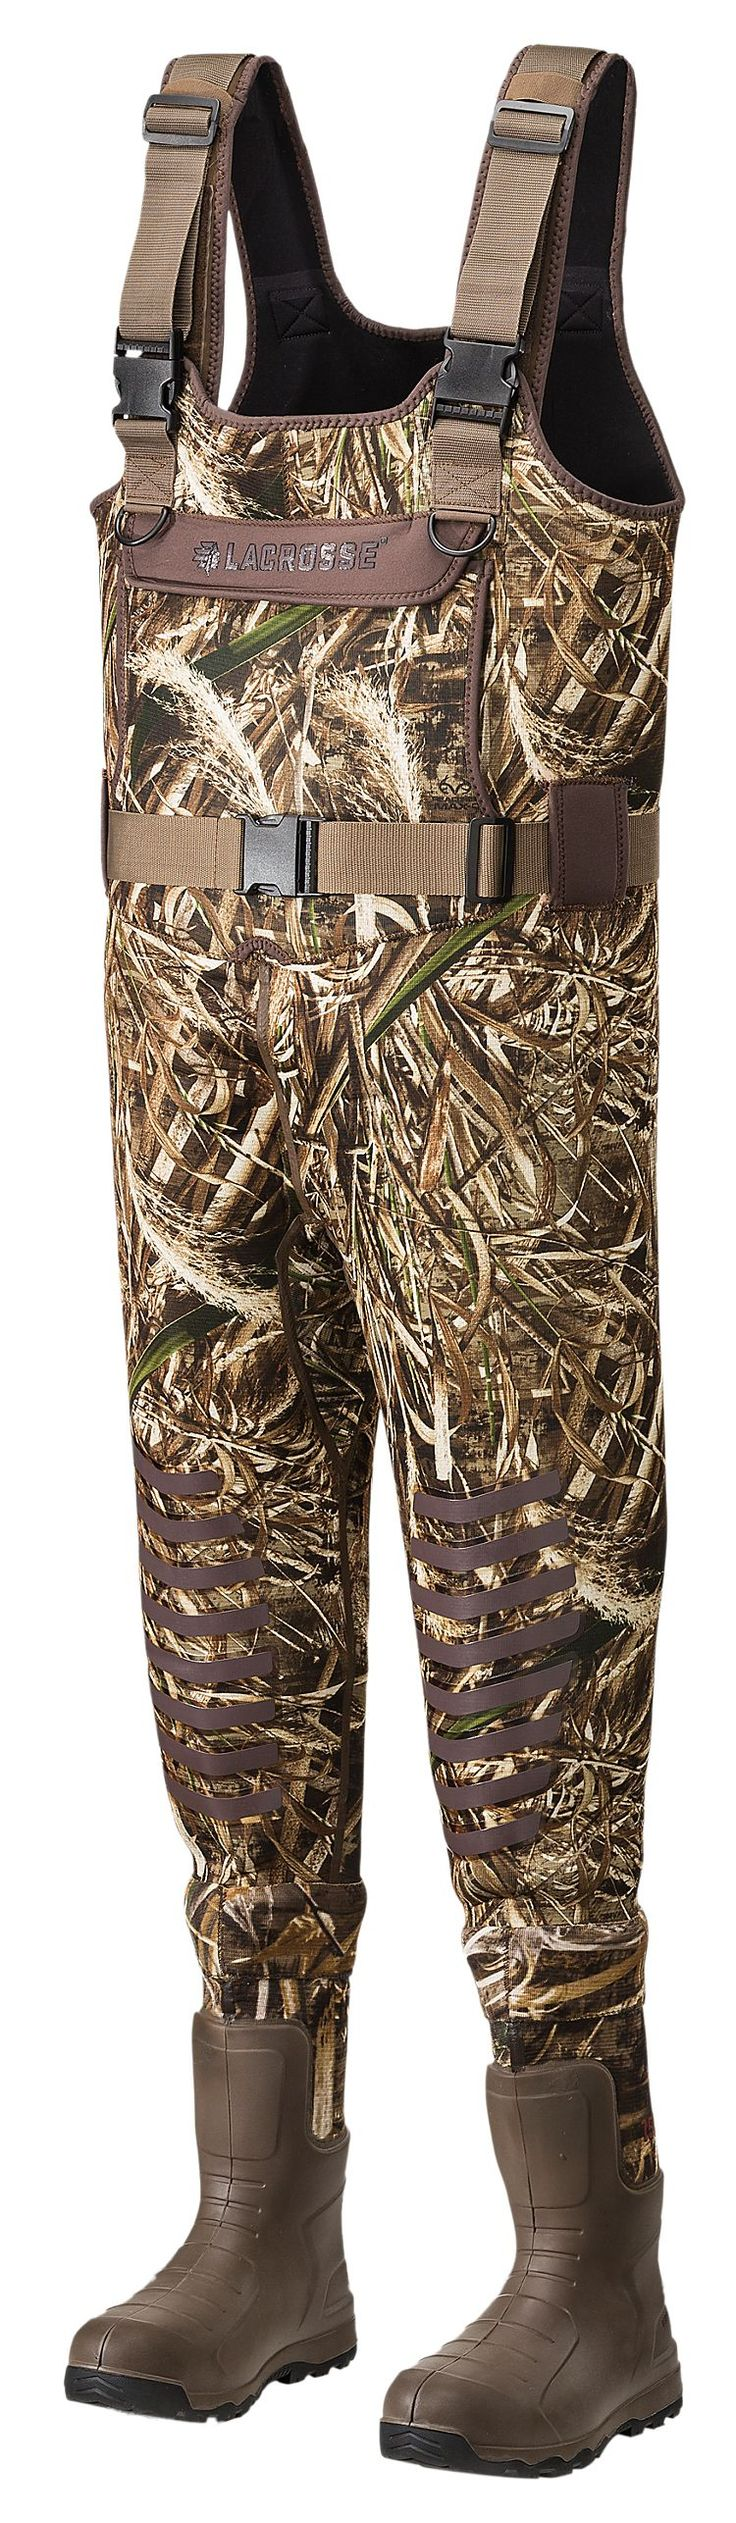 LaCrosse AeroTuff Insulated Boot-Foot Waders for Men - Realtree MAX-5 | Bass Pro Shops--size 10